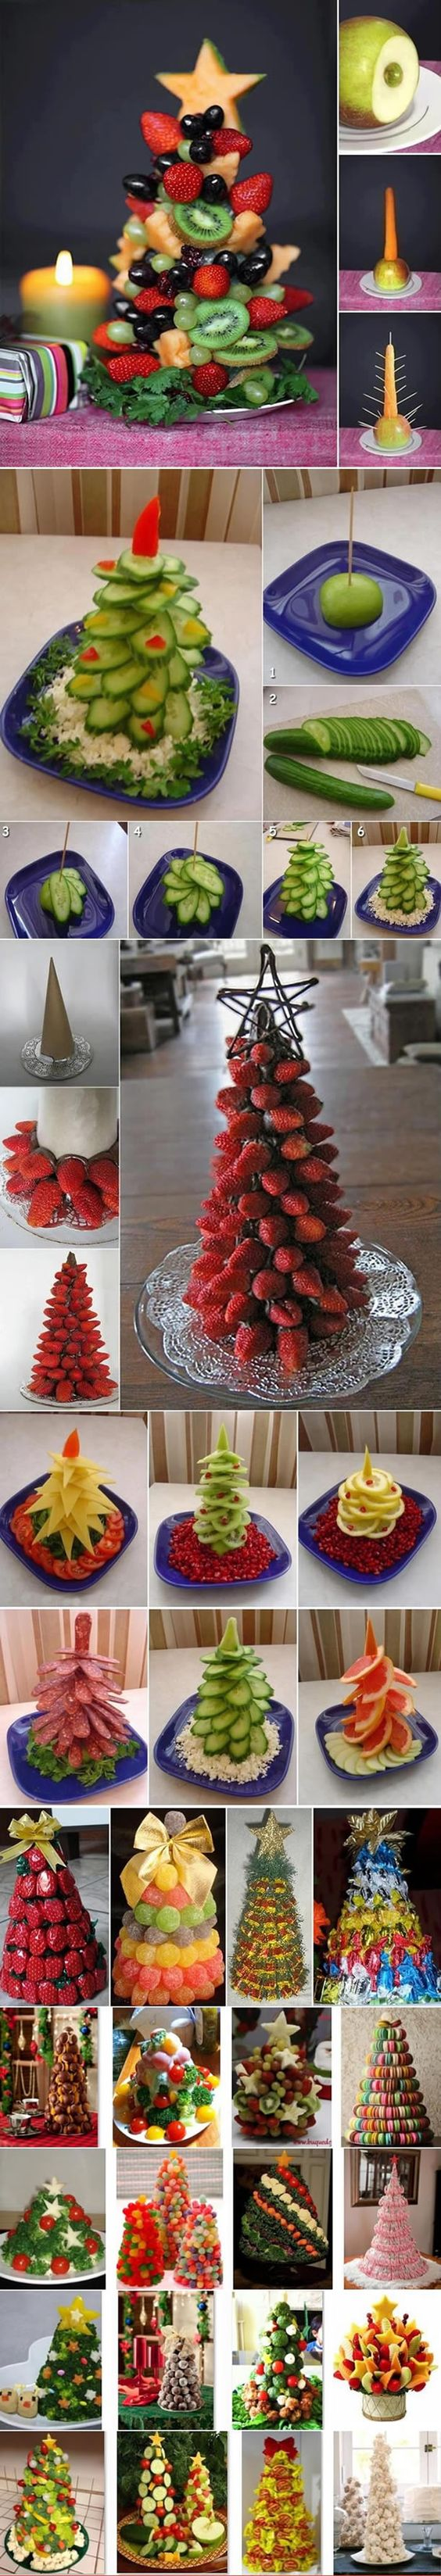 DIY Food Christmas Trees Pictures, Photos, and Images for Facebook, Tumblr…